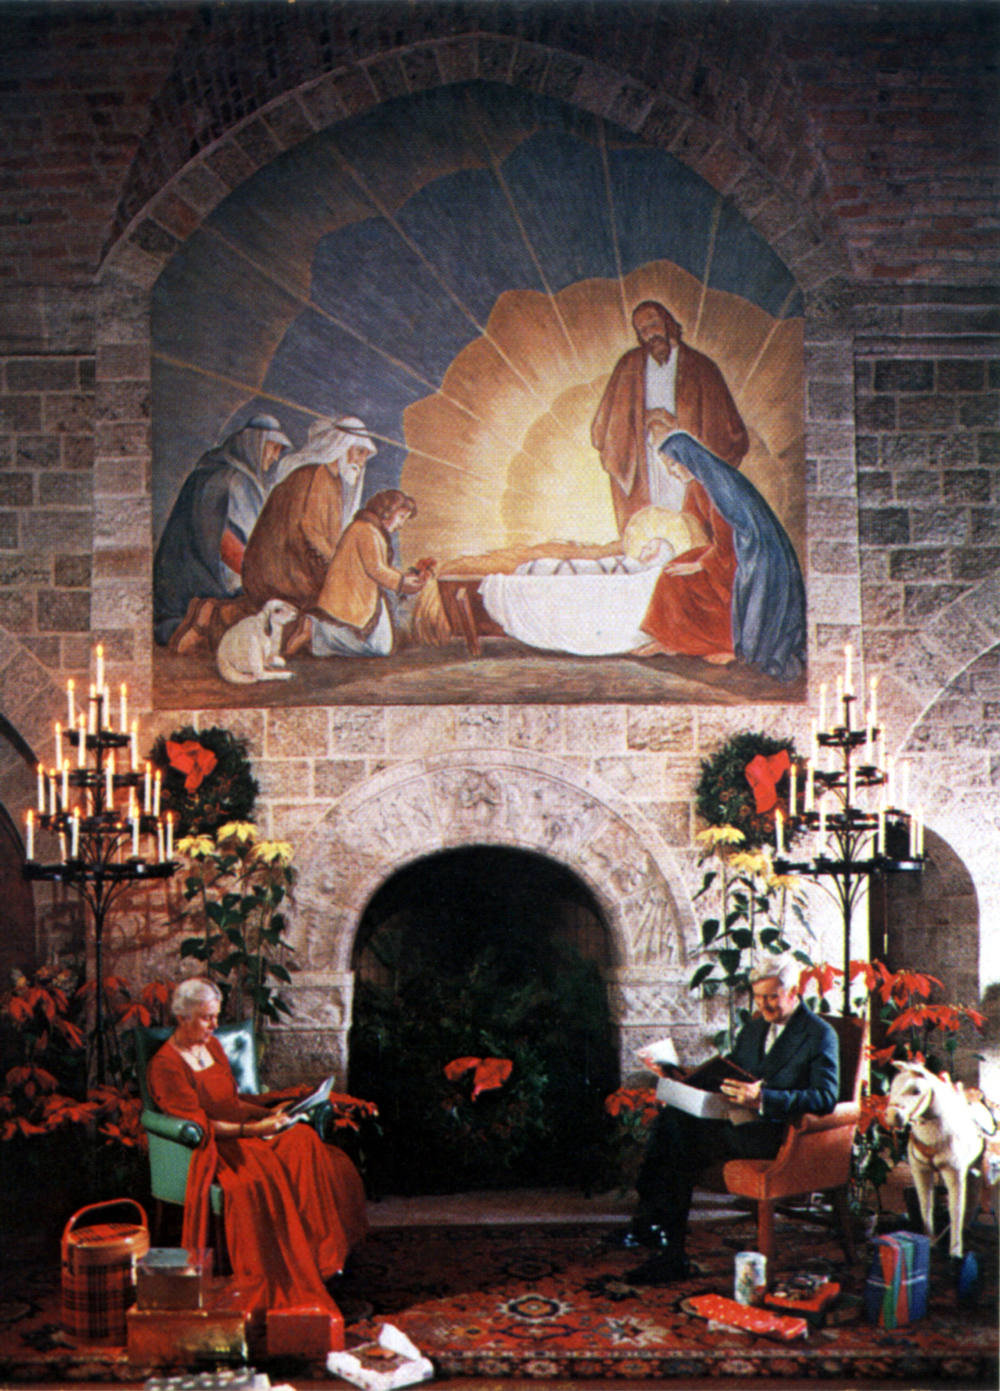 Raymond and Mildred Pitcairn in Glencairn's Upper Hall, posing for their 1954 Christmas card. Behind them is a Nativity painting adapted from Maud and Miska Petersham's children's book, The Christ Child. Thanks to generous donors, a full-sized reinterpretation of the painting made this year by a Bryn Athyn artist will hang above the fireplace this holiday season.